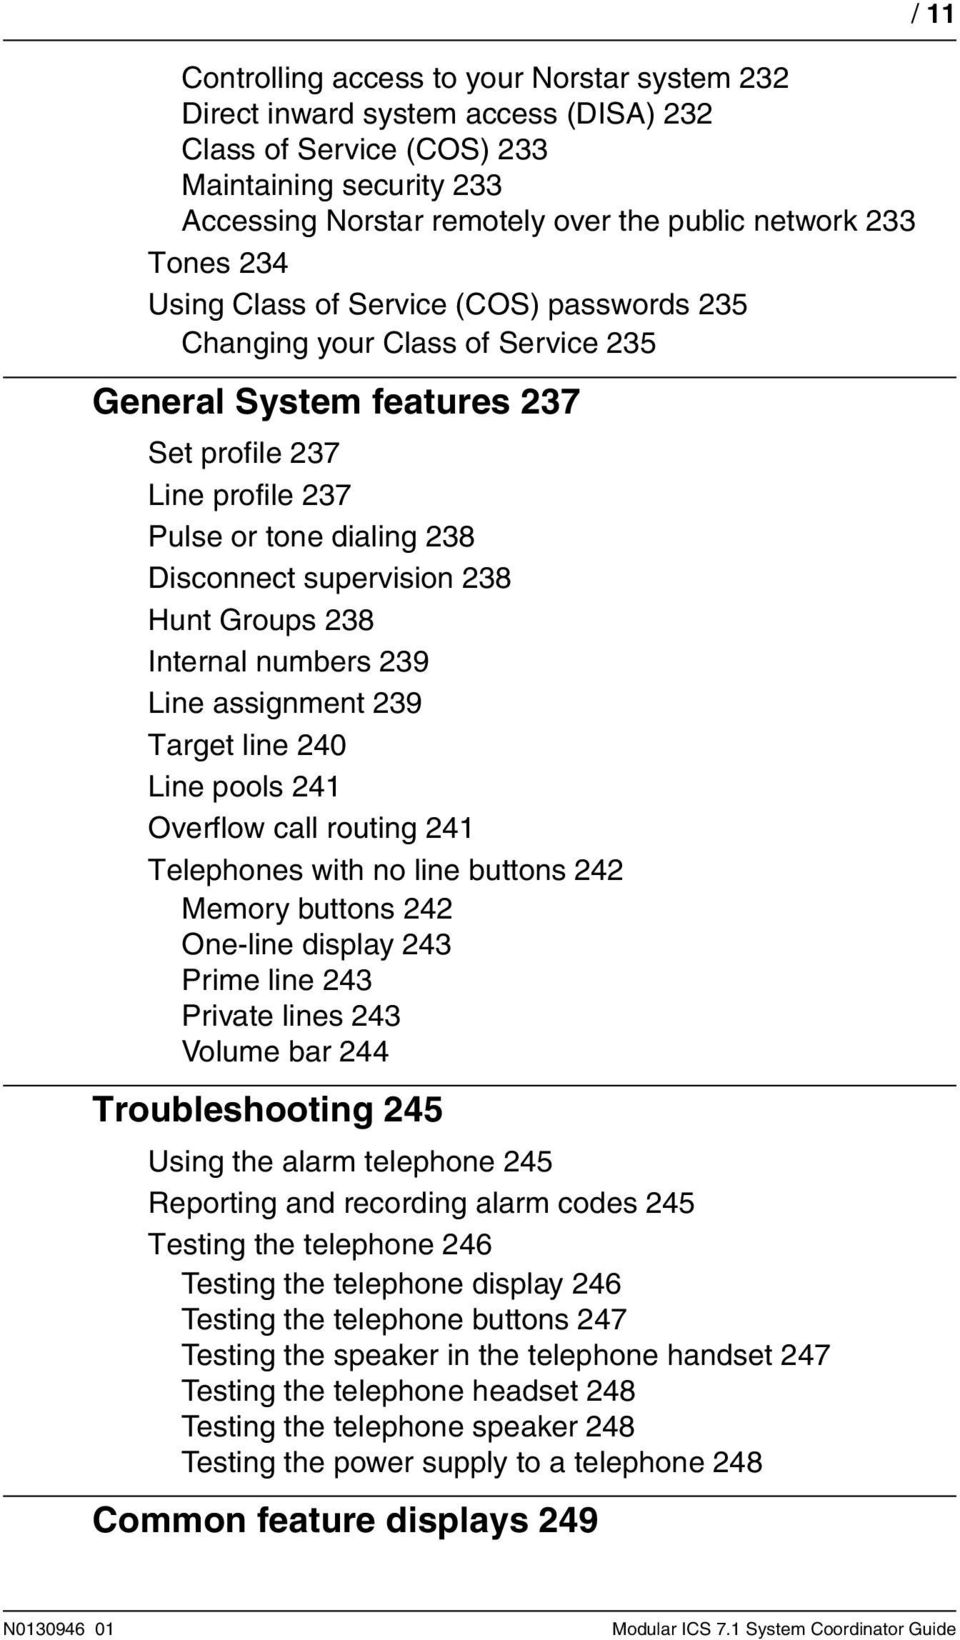 Hunt Groups 238 Internal numbers 239 Line assignment 239 Target line 240 Line pools 241 Overflow call routing 241 Telephones with no line buttons 242 Memory buttons 242 One-line display 243 Prime